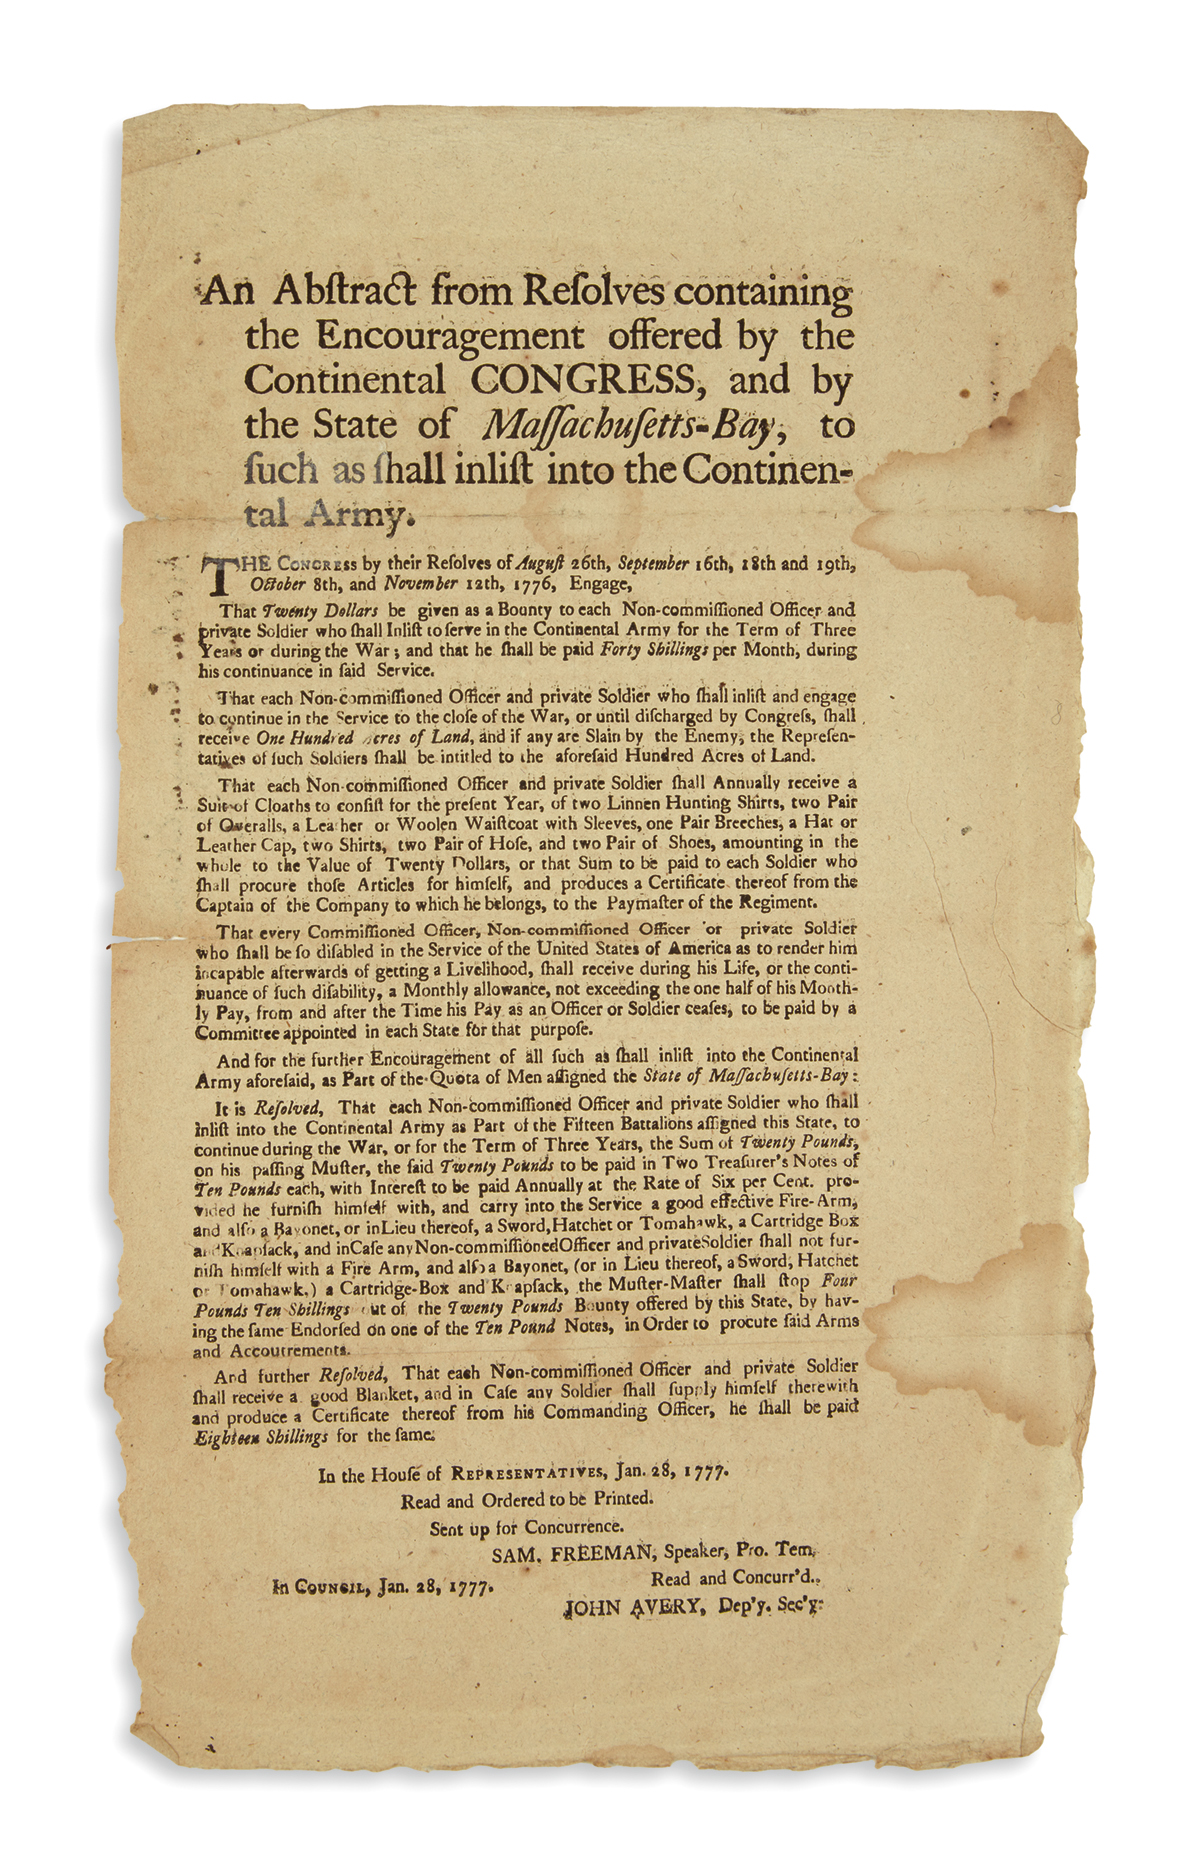 (AMERICAN REVOLUTION--1777.) An Abstract from Resolves Containing the Encouragement Offered by the Continental Congress,